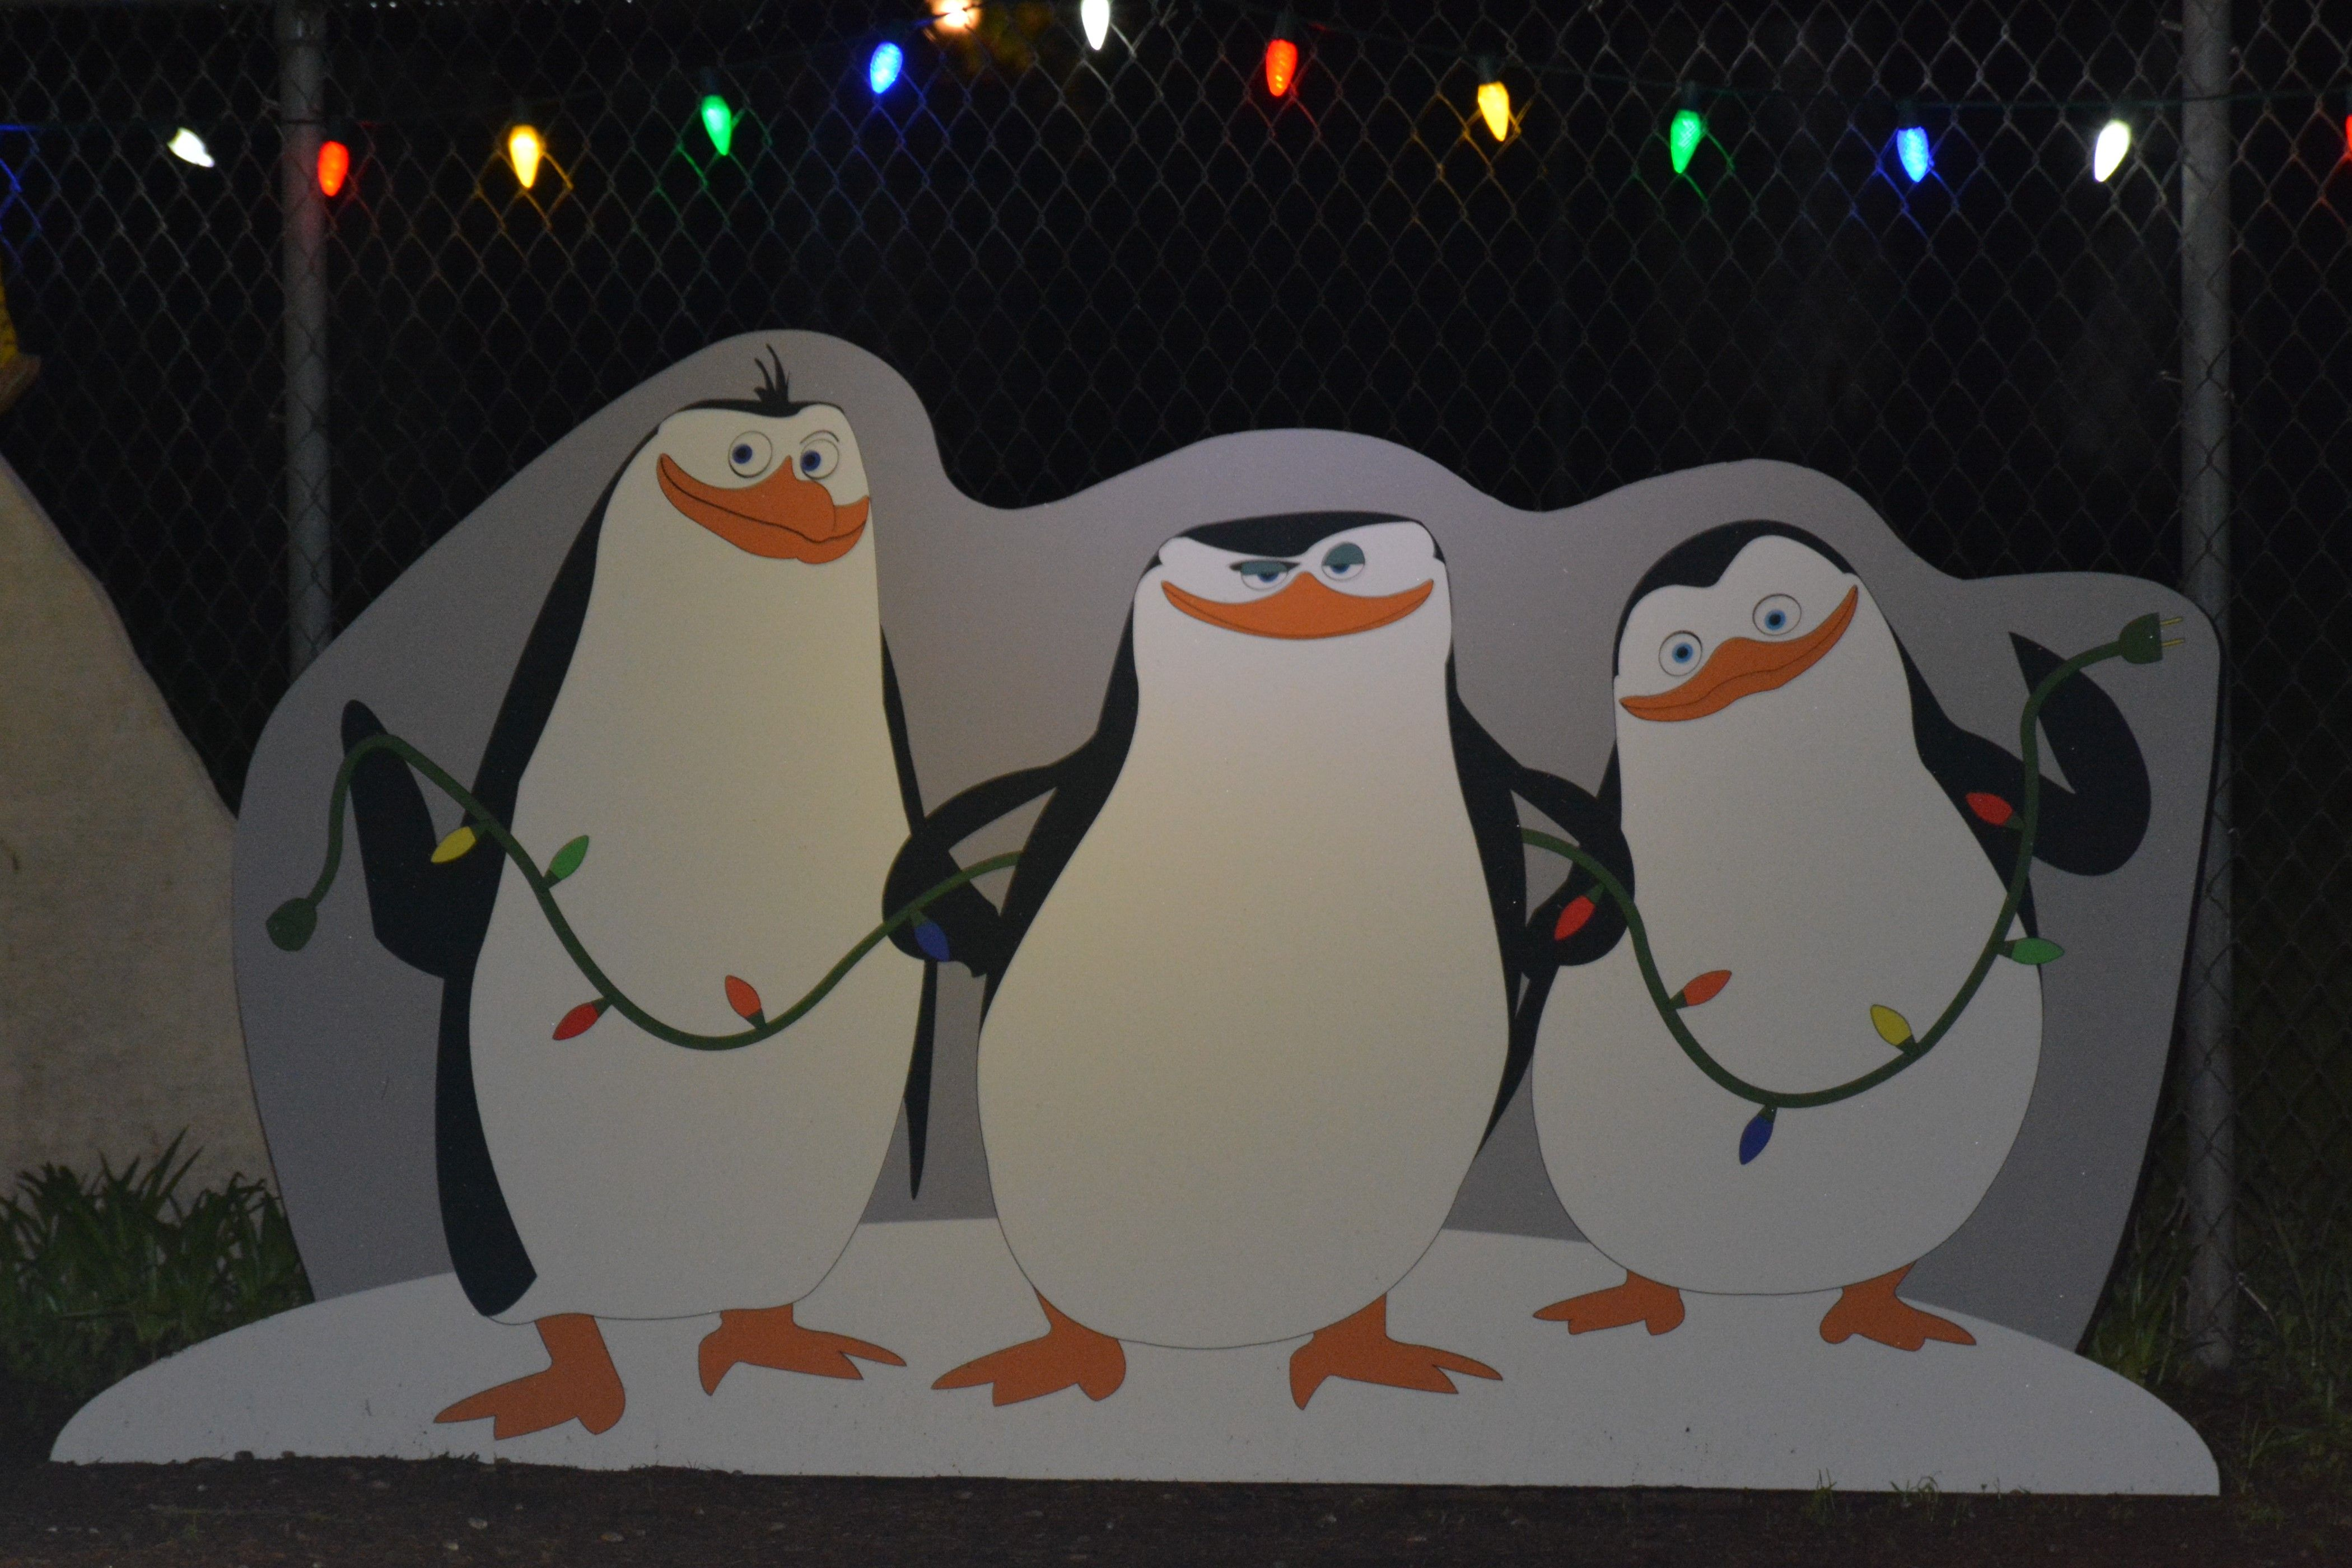 Penguins of Madagascar. Penguins of madagascar, Olaf the